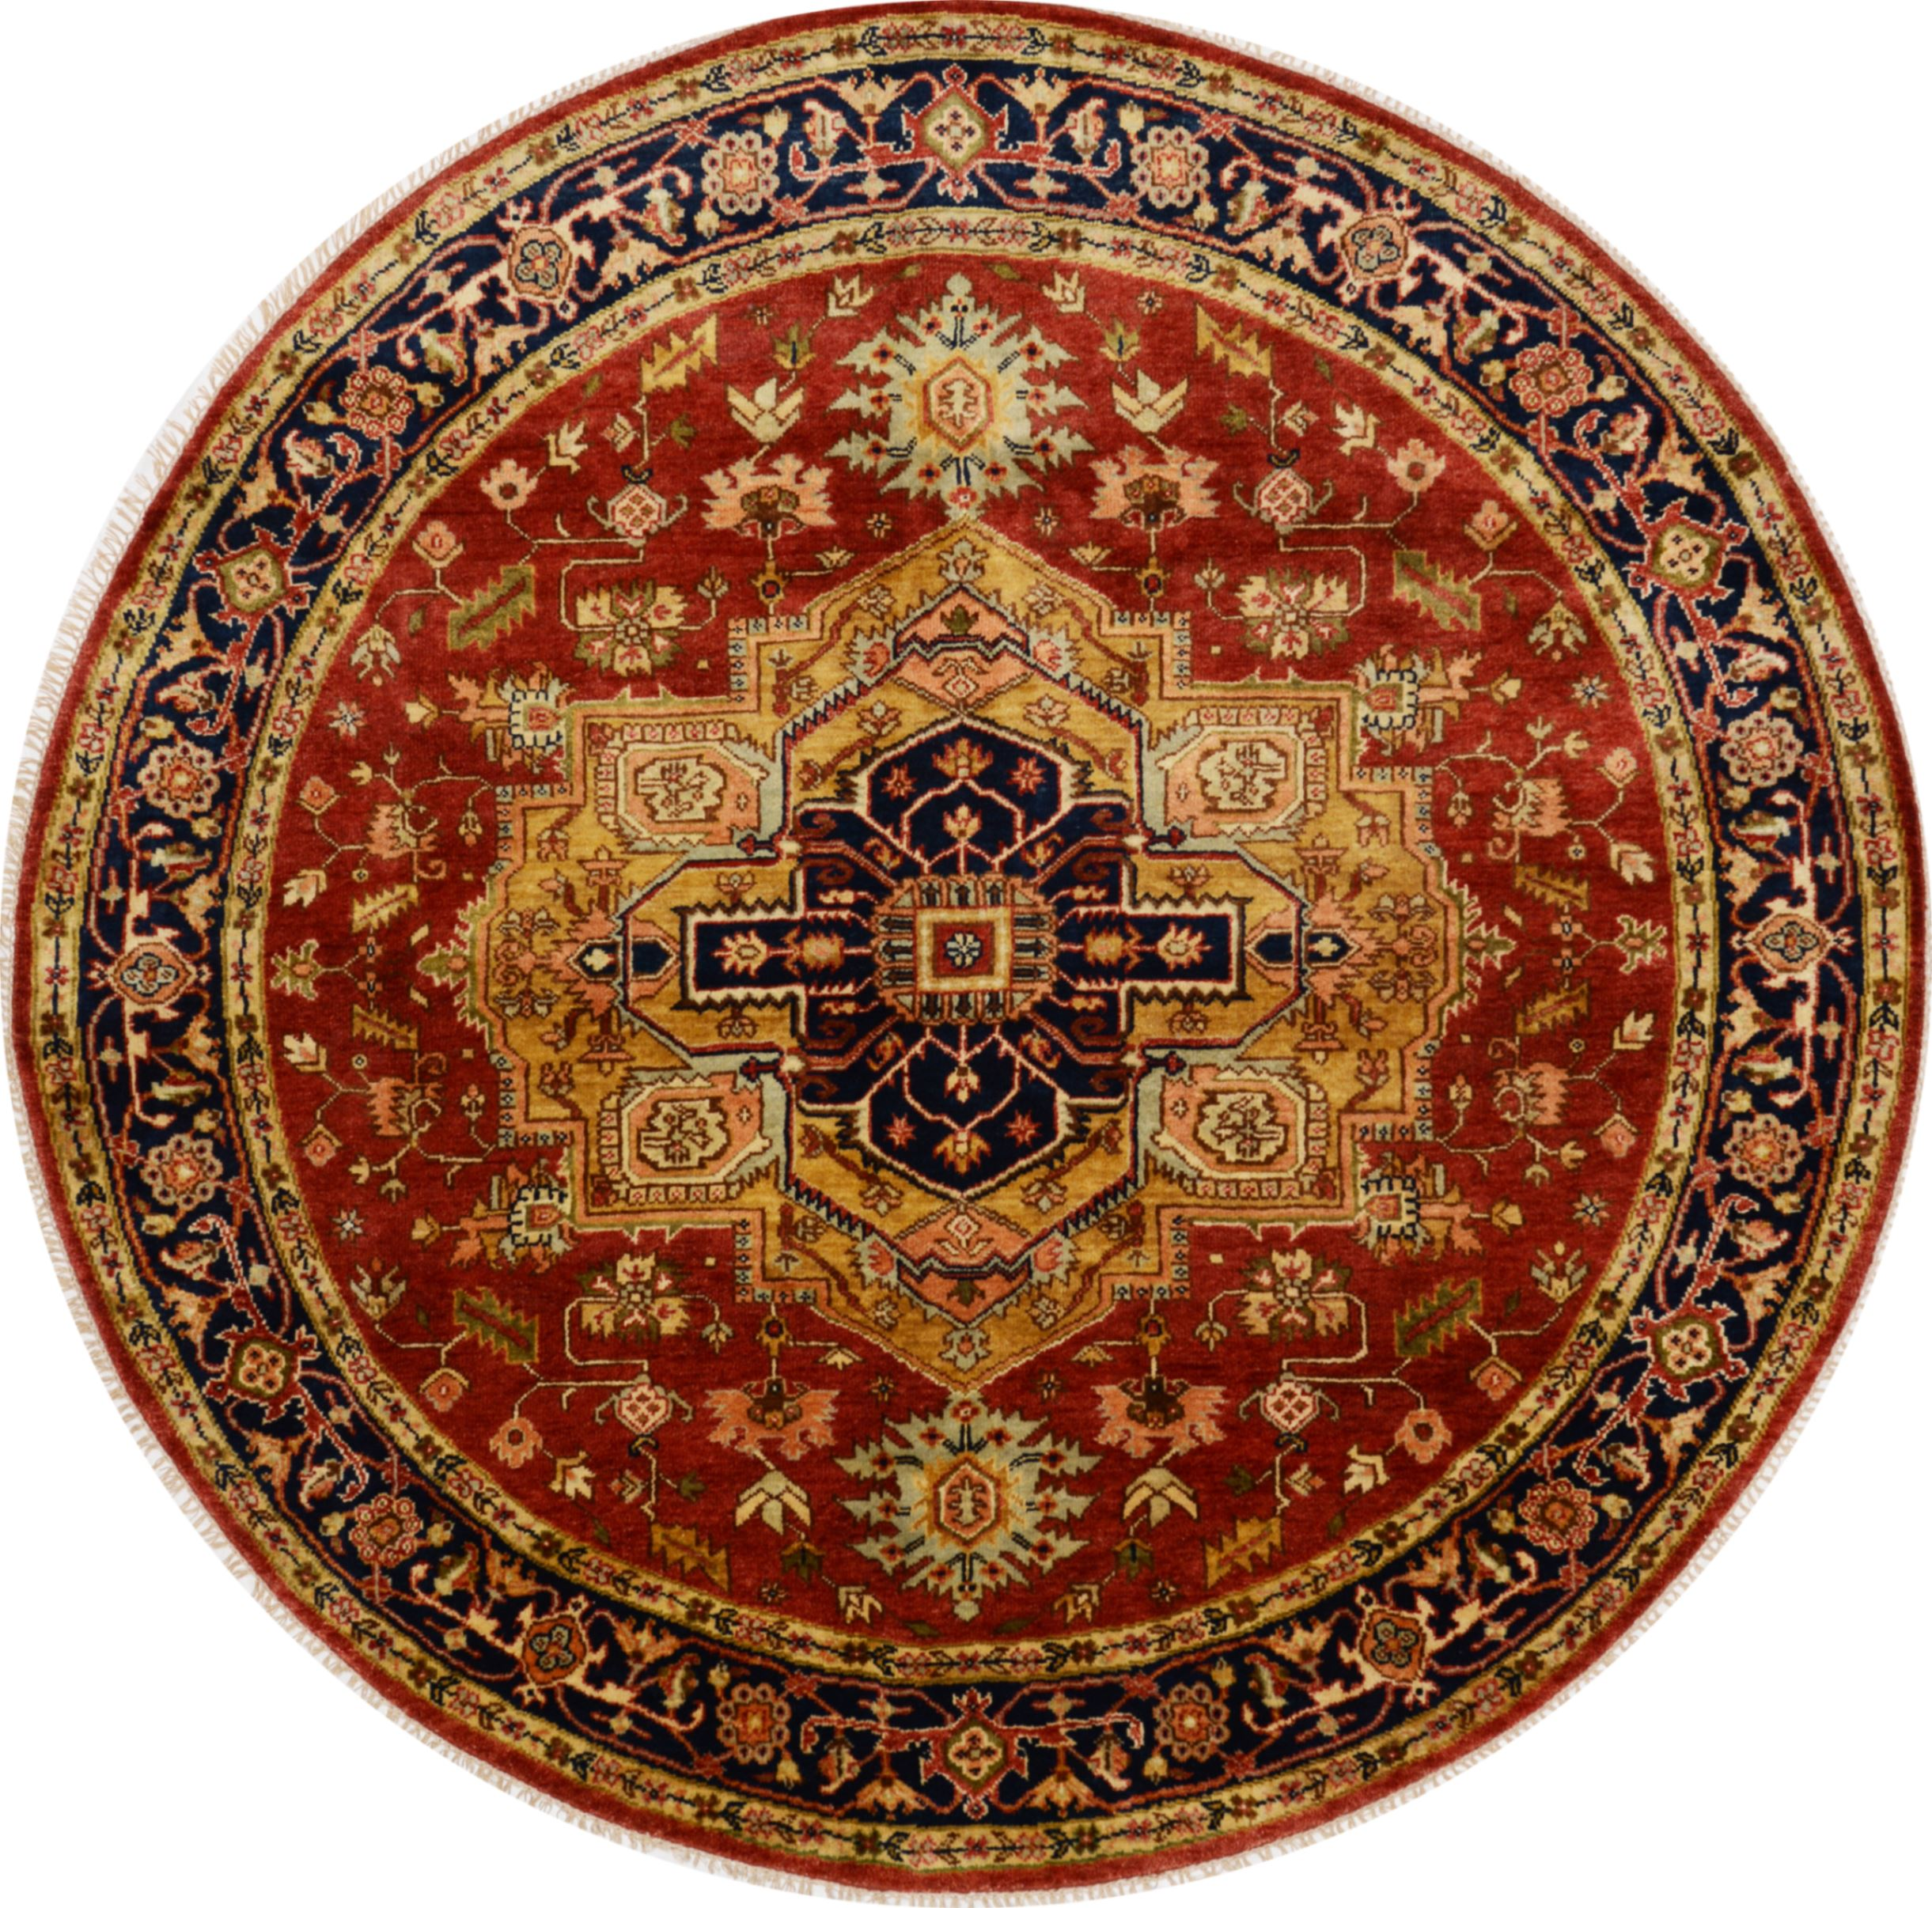 Area Rugs From India: Round Carpets India